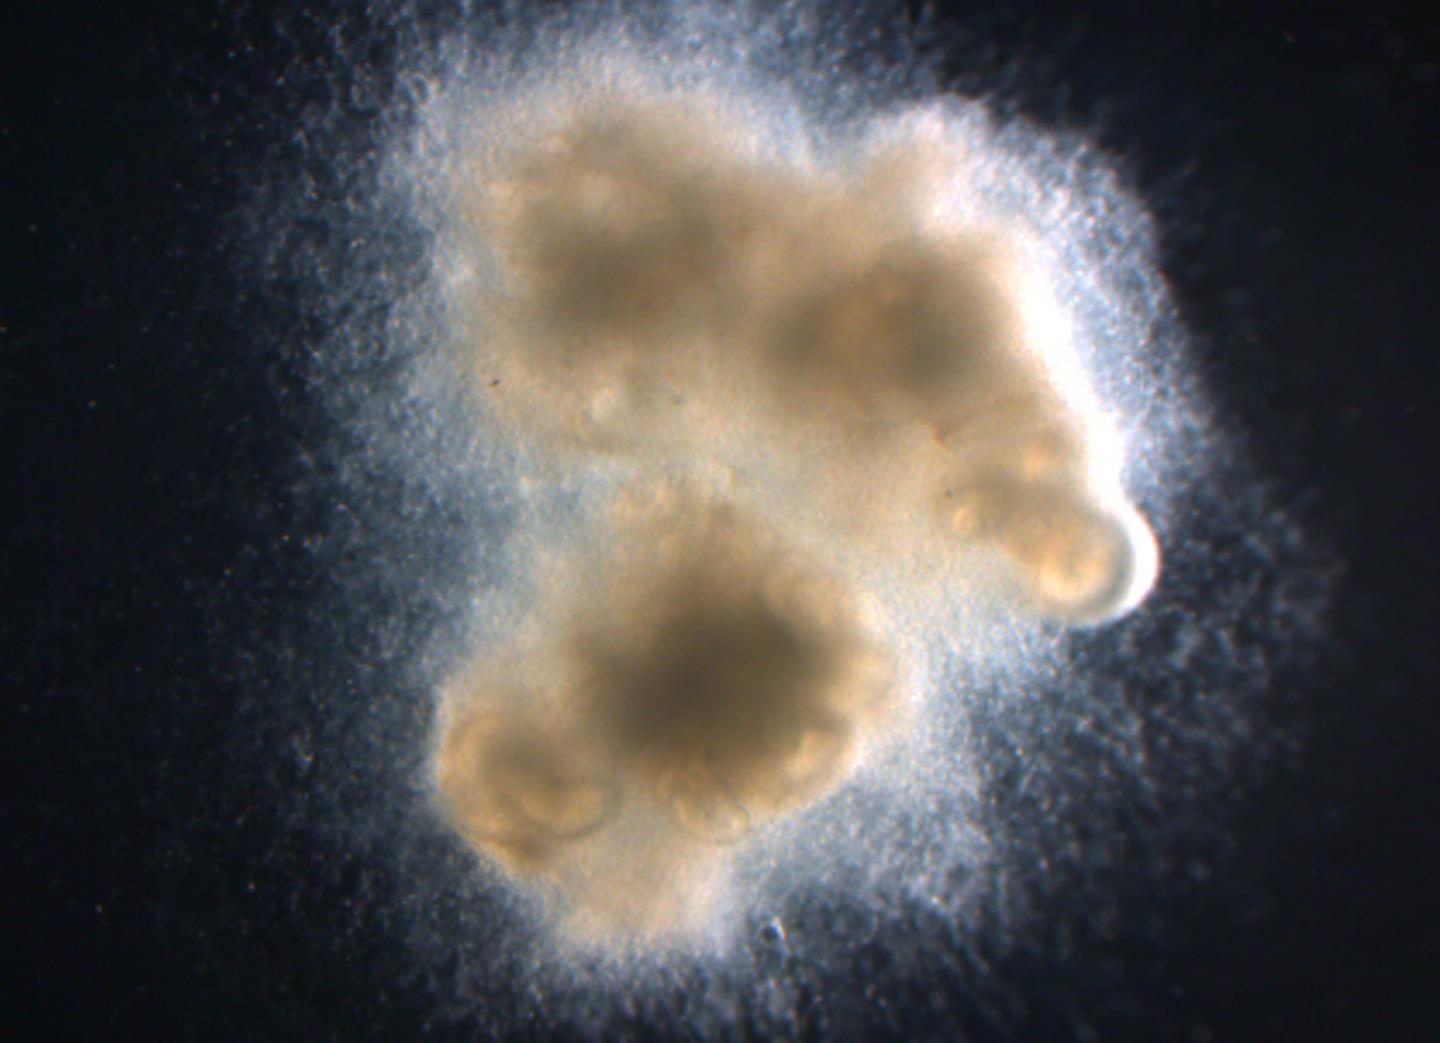 Human intestinal organoids with enteric (intestinal) nerves generated in a petri dish using human pluripotent stem cells, which can become any cell type in the body. / Credit: Cincinnati Children's